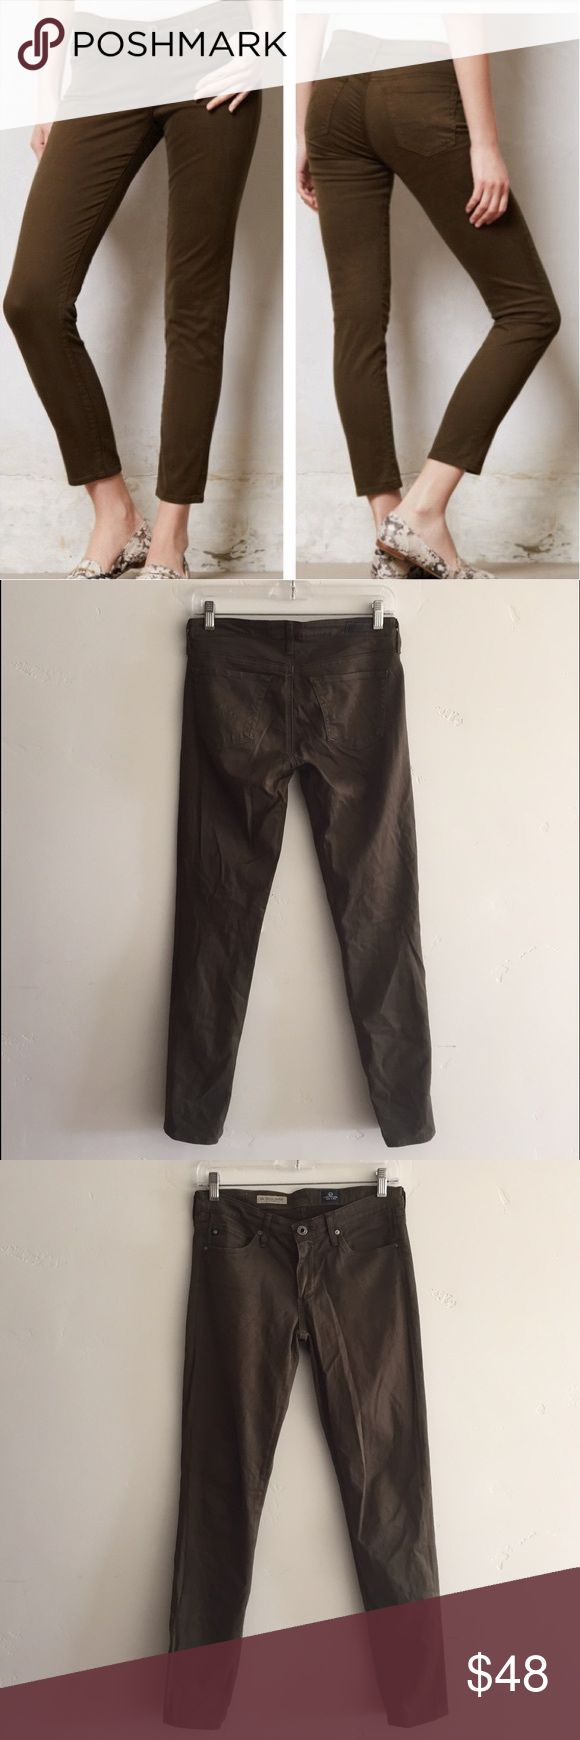 "AG Adriano Goldschmied Stevie Ankle Pants AG Adriano Goldschmied Stevie Ankle Pants in 26R.  Inseam is 29"".  Material has some stretch to it.  In excellent condition. AG Adriano Goldschmied Jeans"